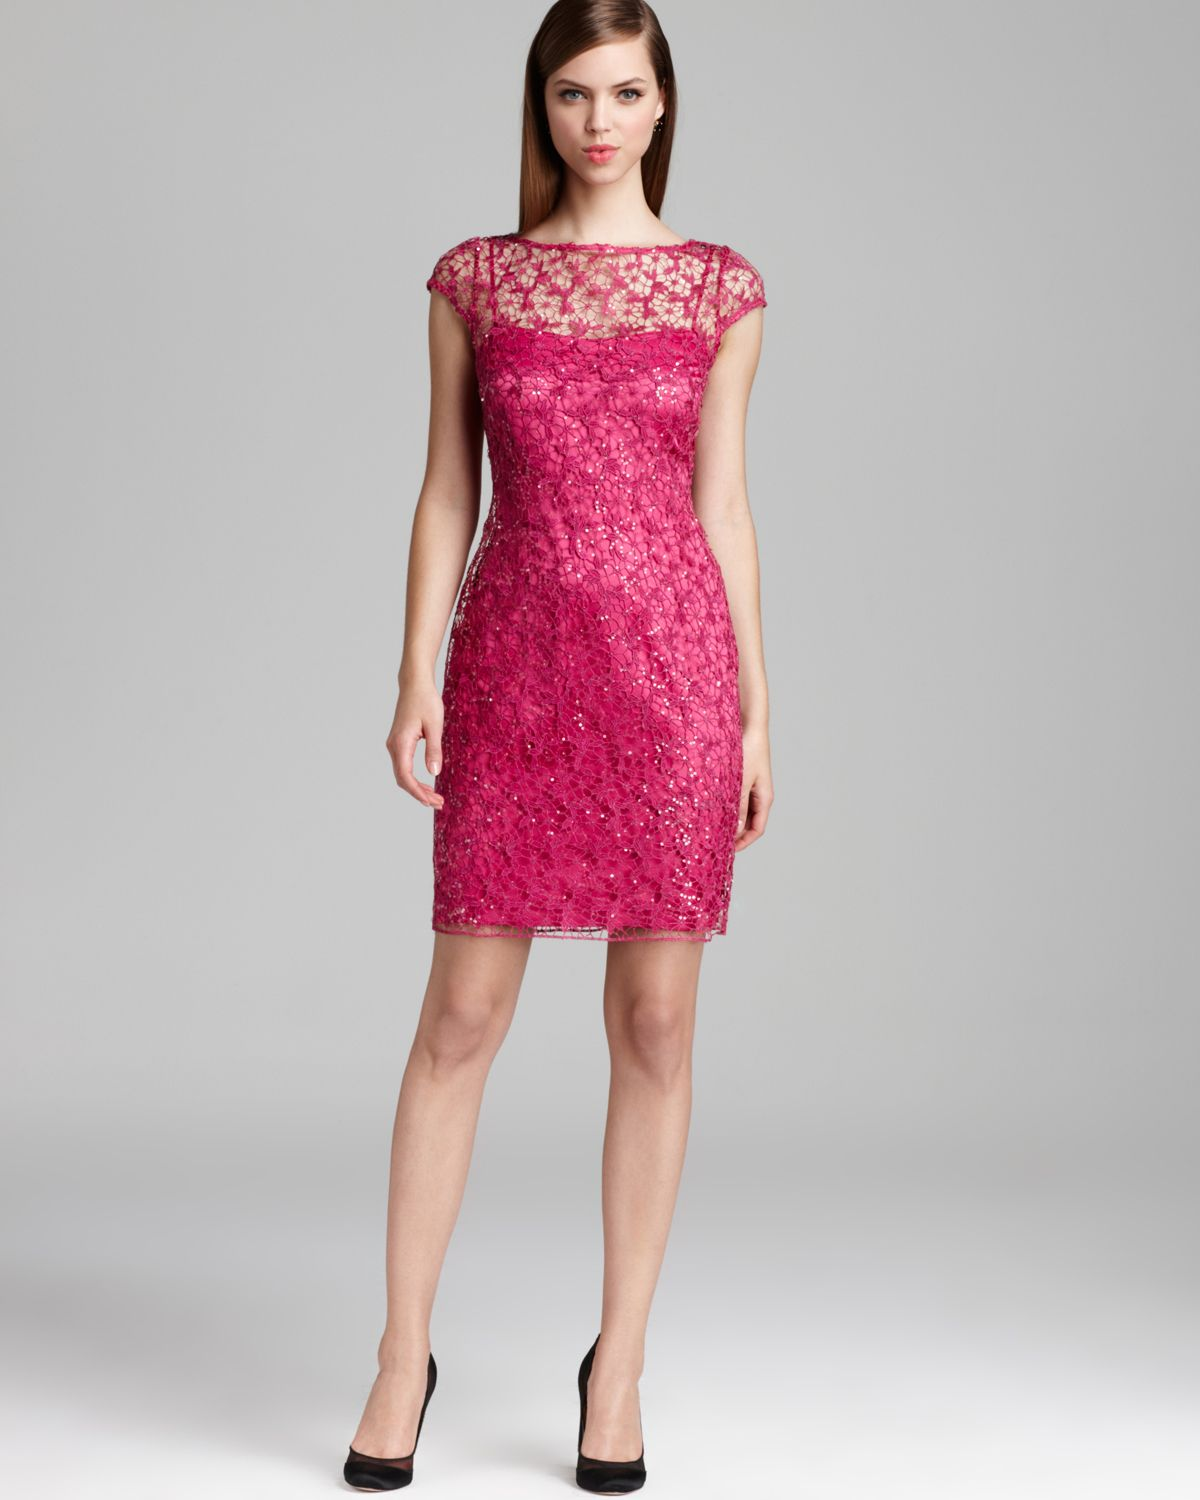 Kay unger Lace Dress Cap Sleeve in Pink  Lyst